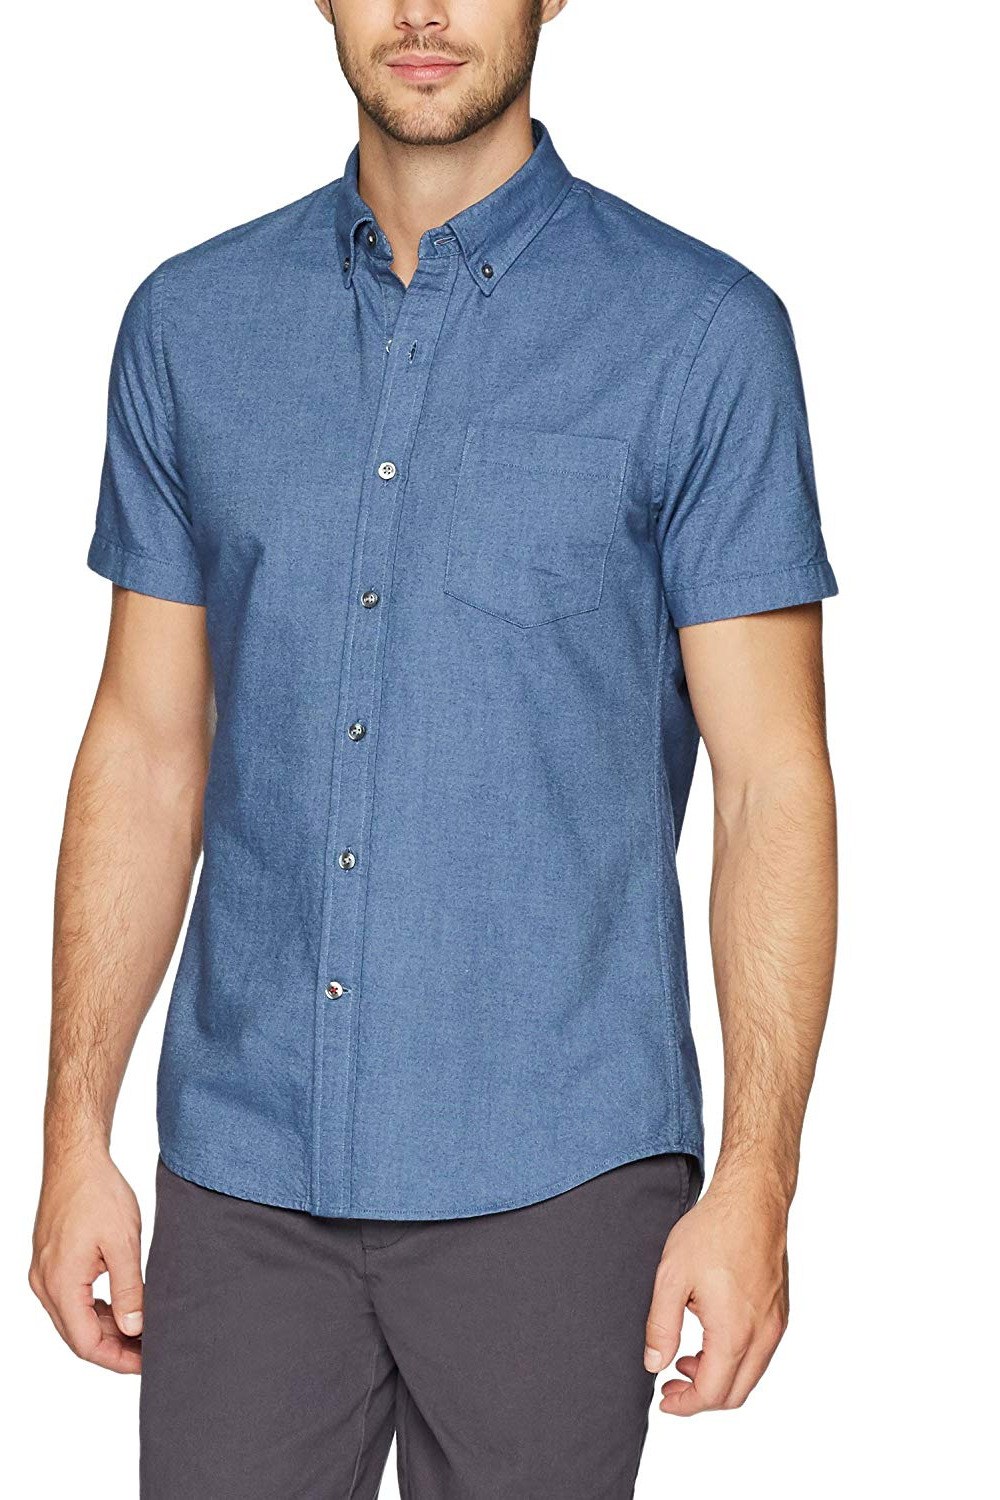 Goodthreads Men's Slim-Fit Short-Sleeve Solid Oxford Shirt